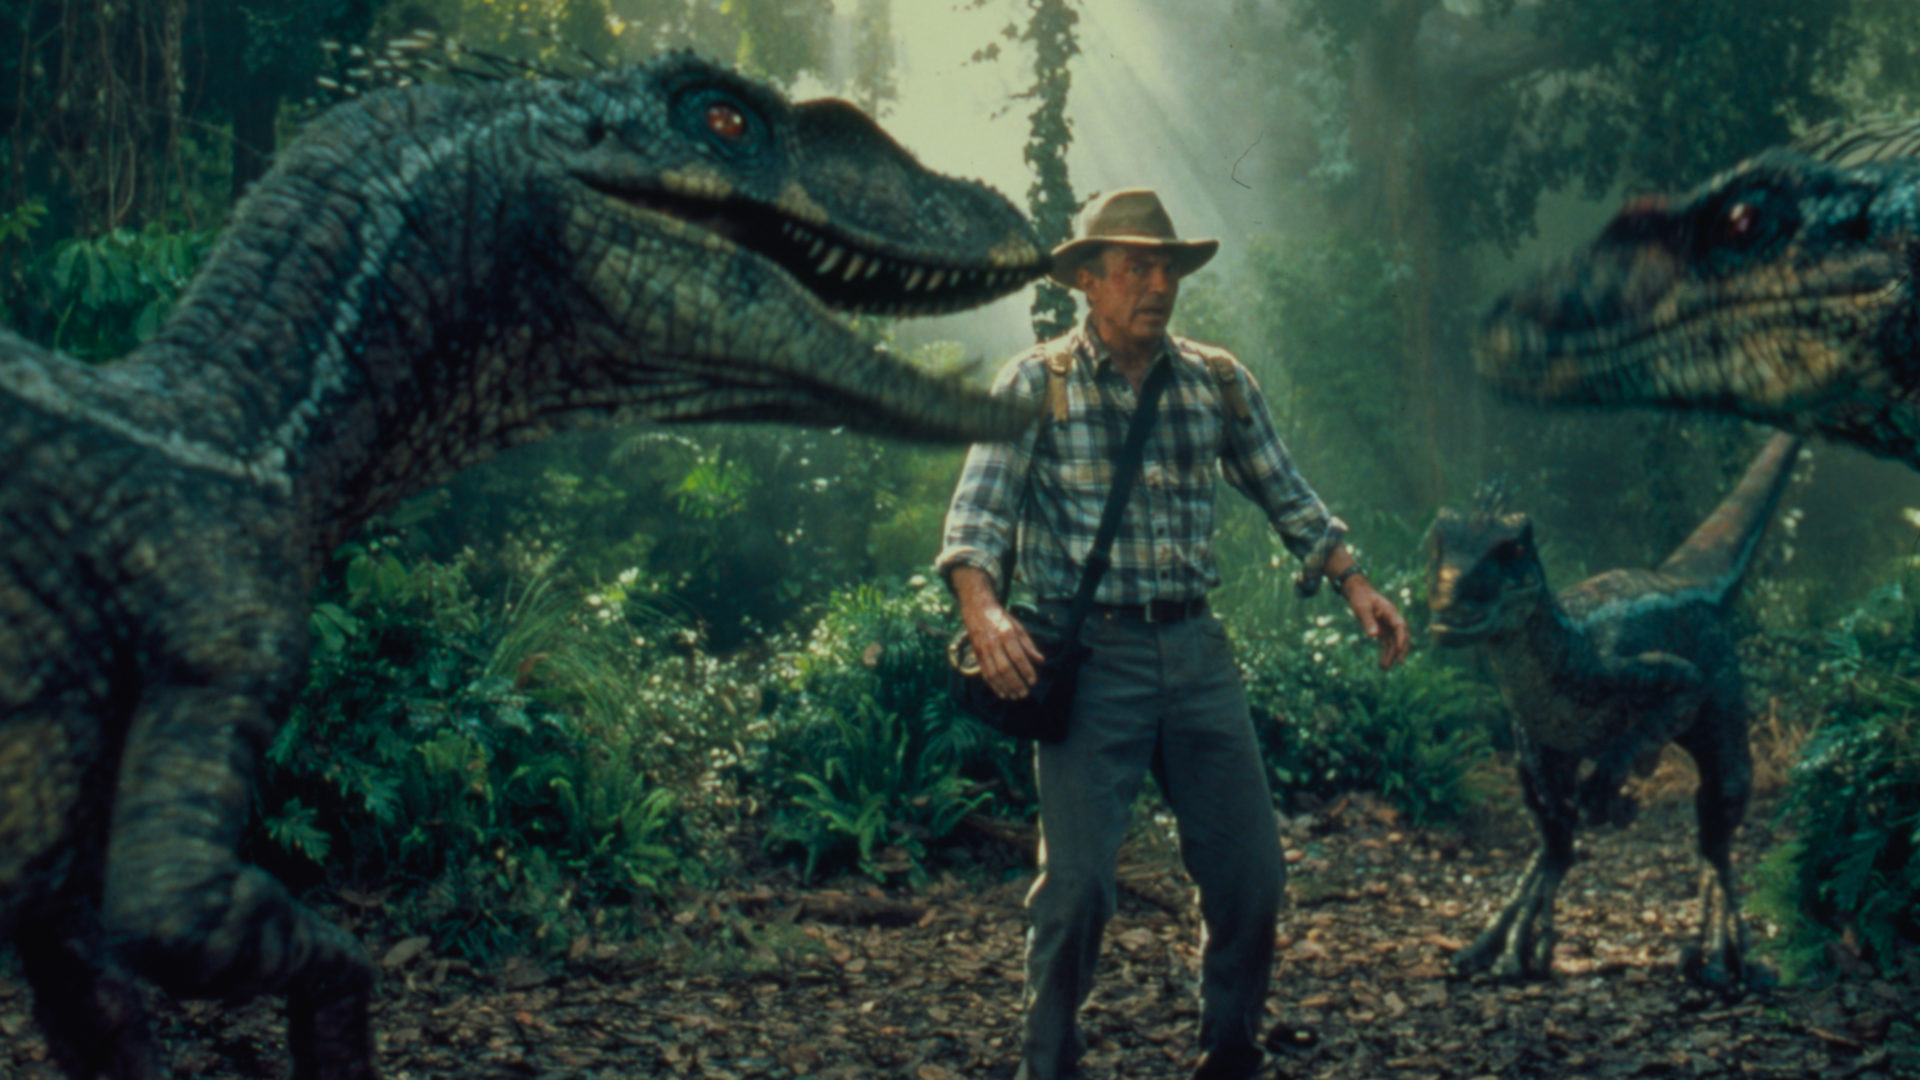 Jurassic Park III (2001) - About the Movie | Amblin